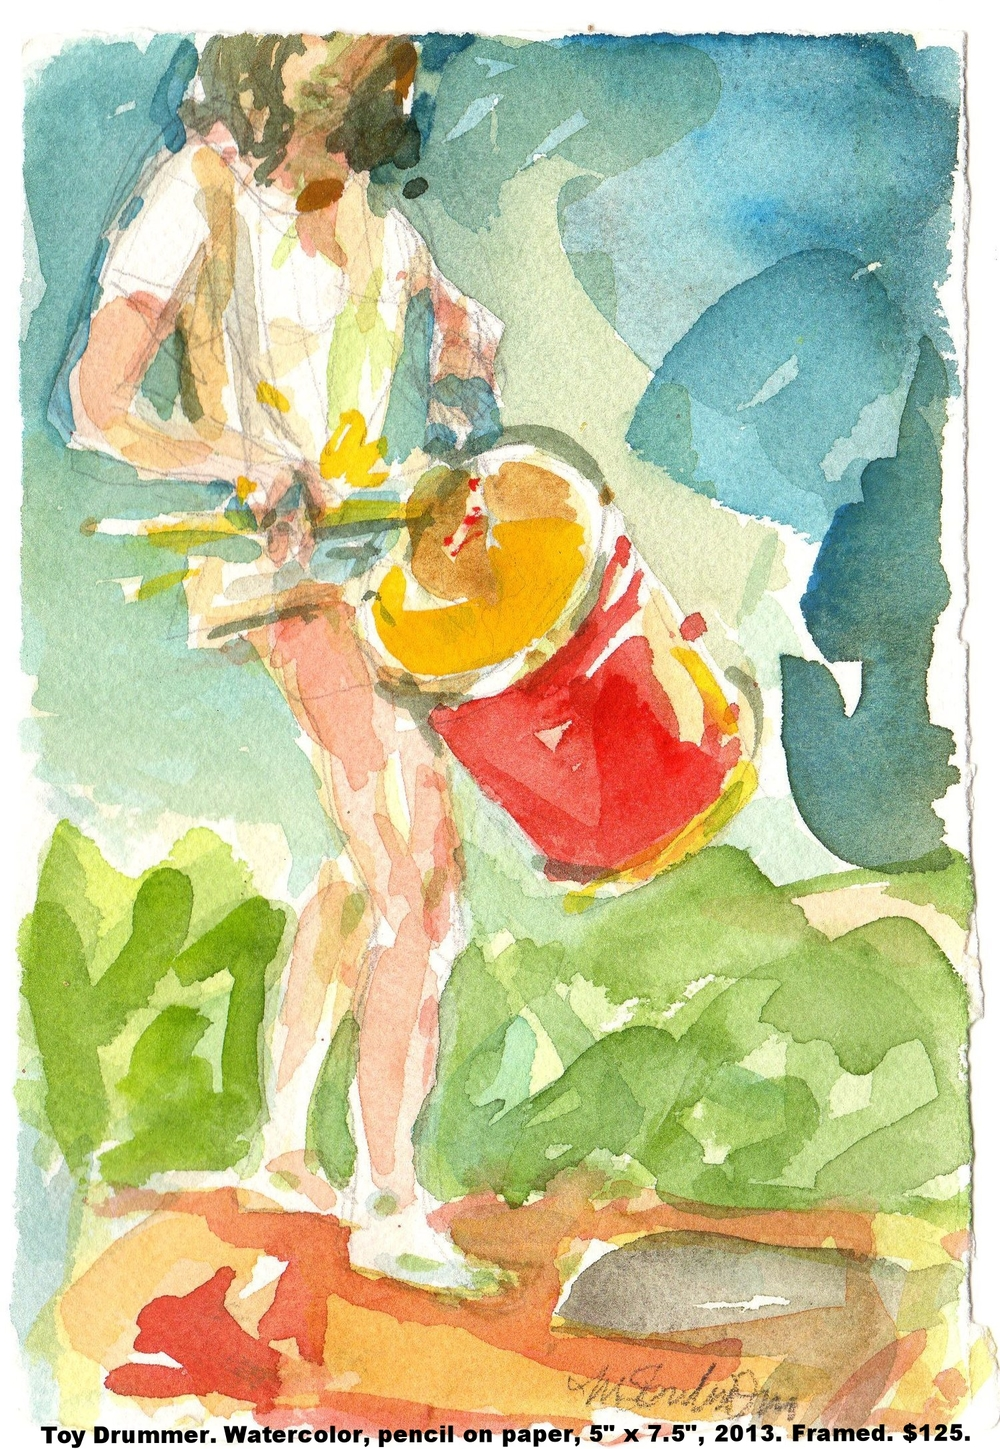 43 Fred Wise Toy Drummer Watercolor and pencil on paper 5 in x 7.5 in 2013.jpg